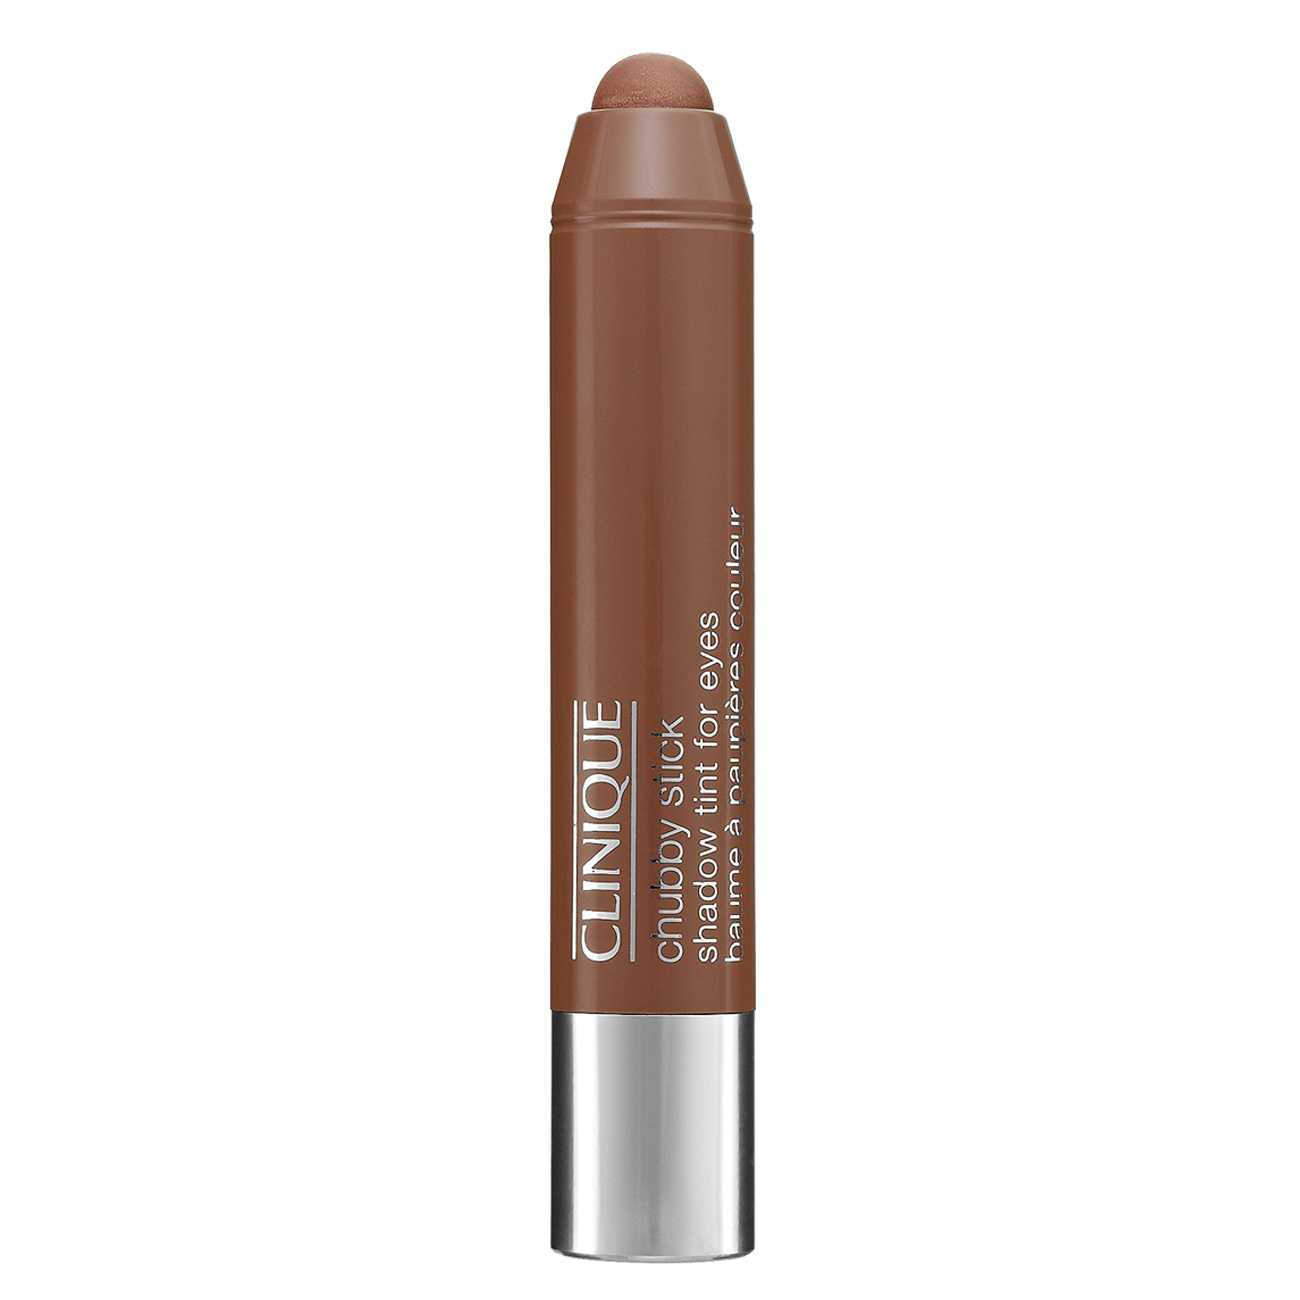 CHUBBY STICK SHADOW TINT FOR EYES 3 G Fuller Fudge 3 imagine produs